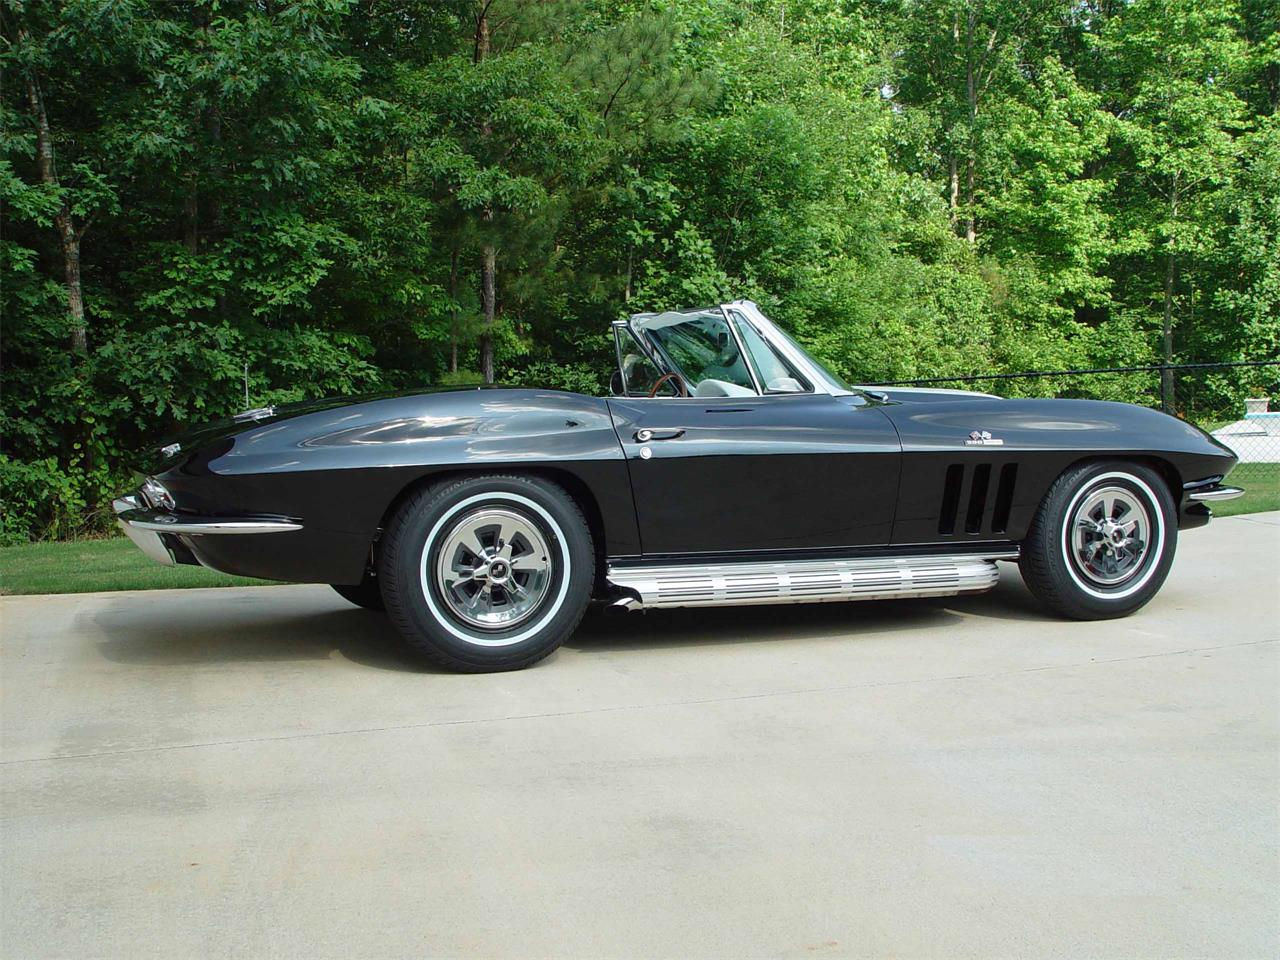 Large Picture of Classic '65 Chevrolet Corvette - $56,900.00 Offered by a Private Seller - GH5V